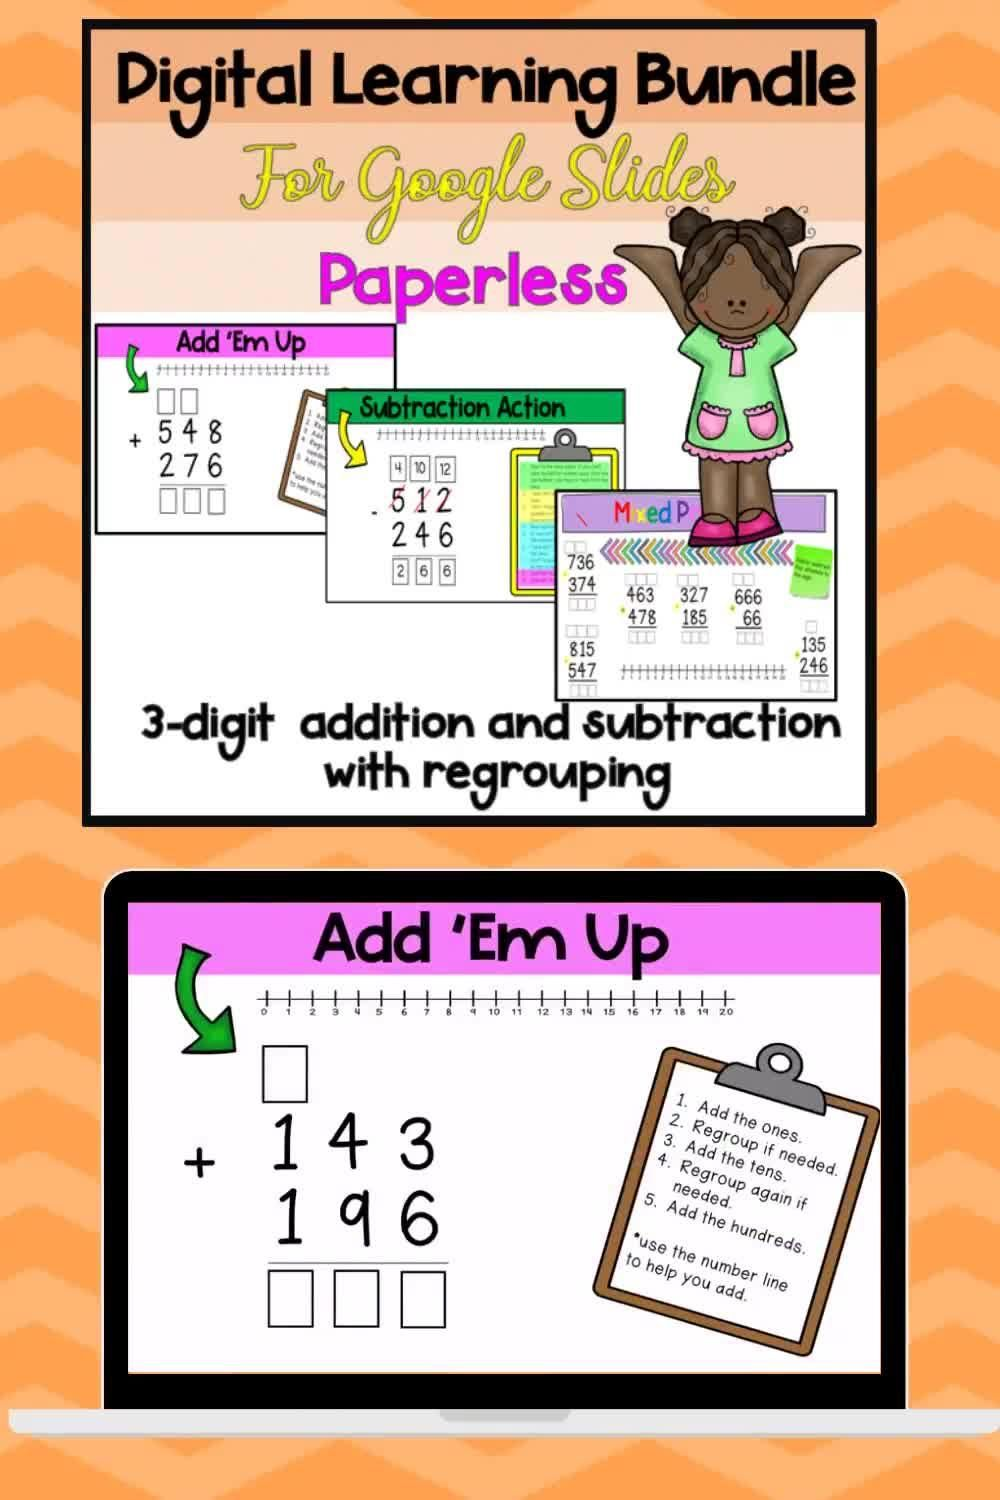 3 Digit Addition With Regrouping Worksheets Elephant Jokes Digital And Print 2nd Grade Math Worksheets Math Practice Worksheets Math Center Activities